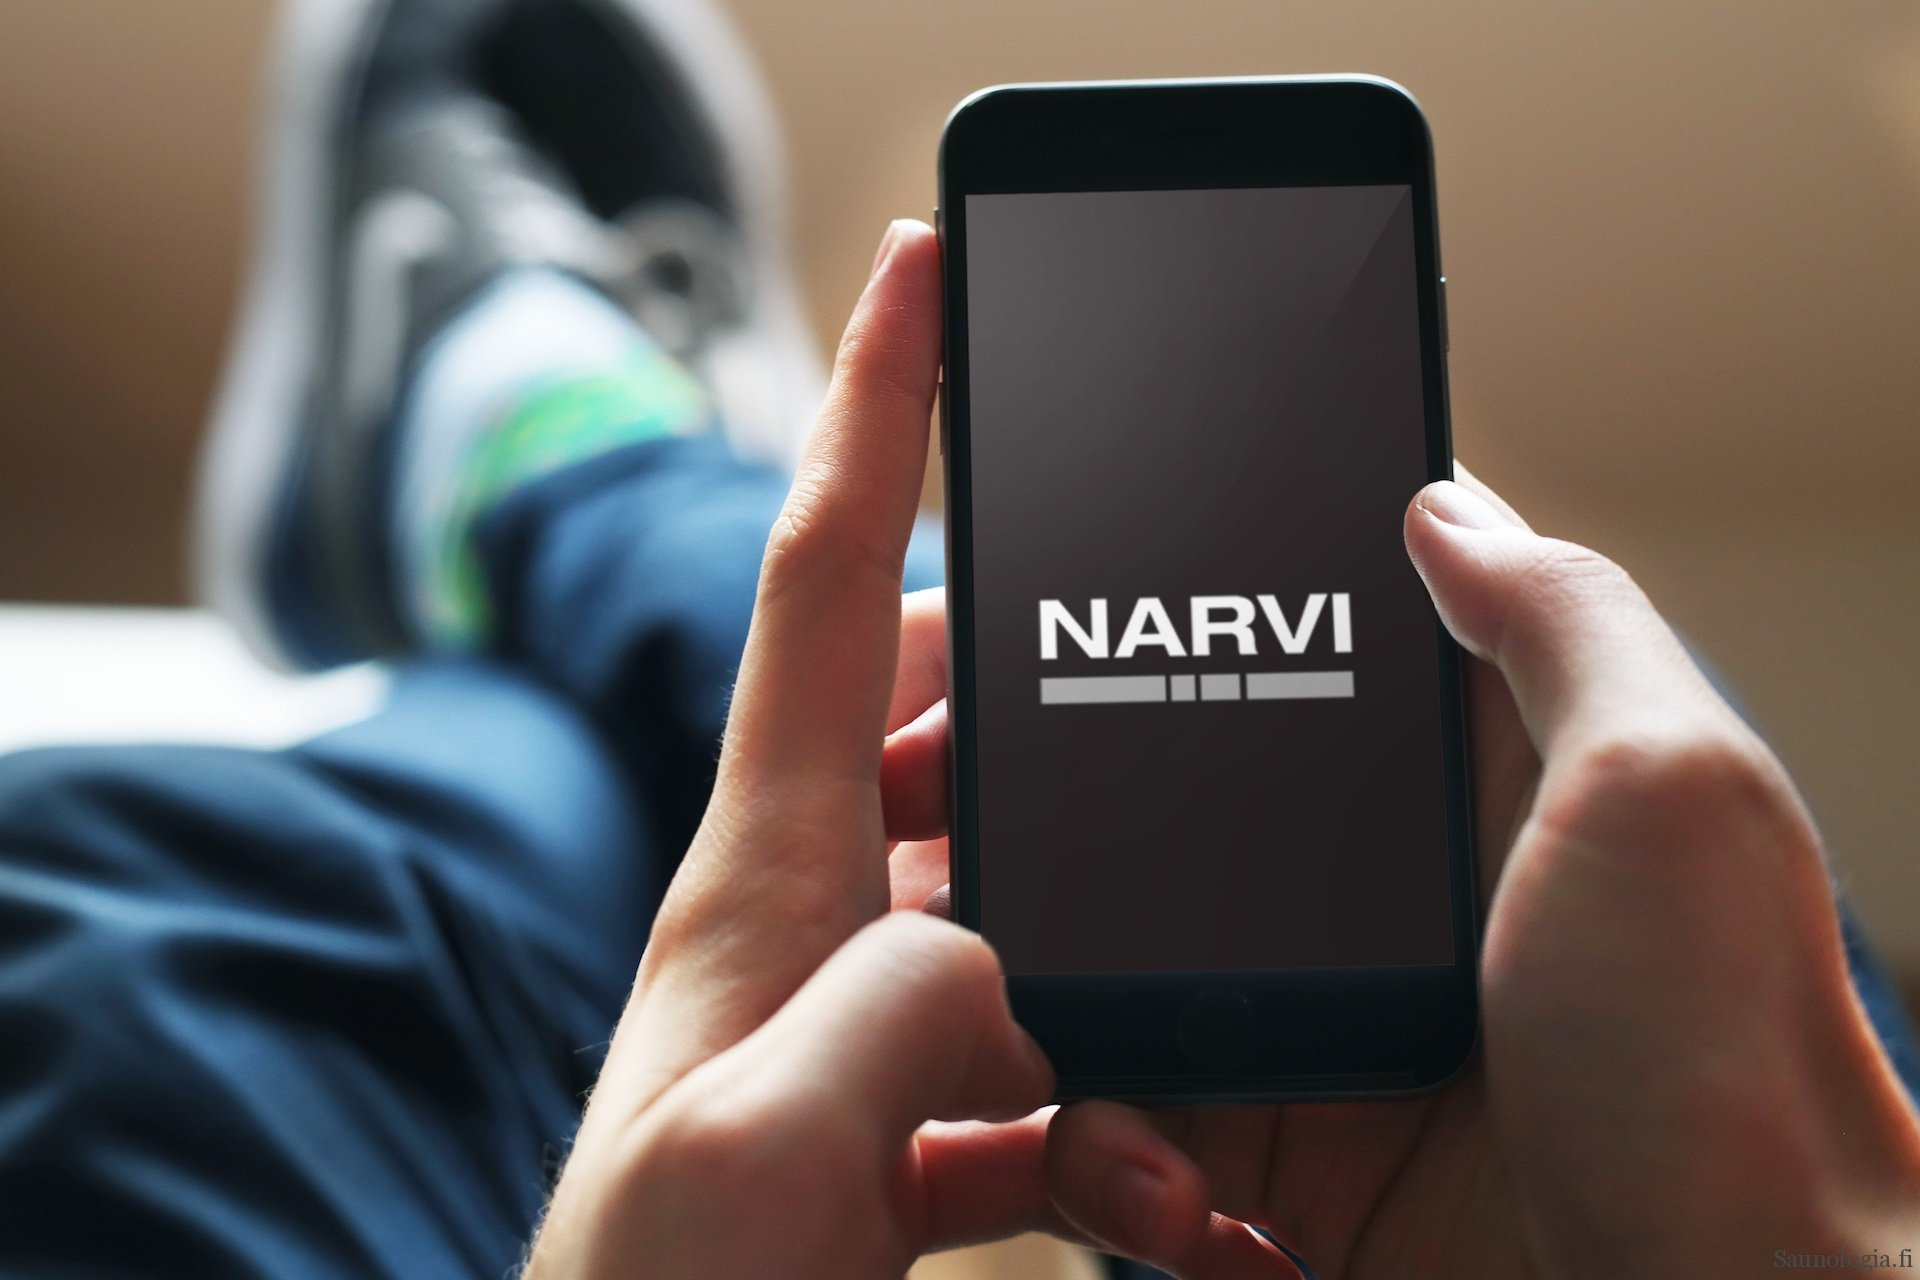 News: Narvi WiFi app-based remote control